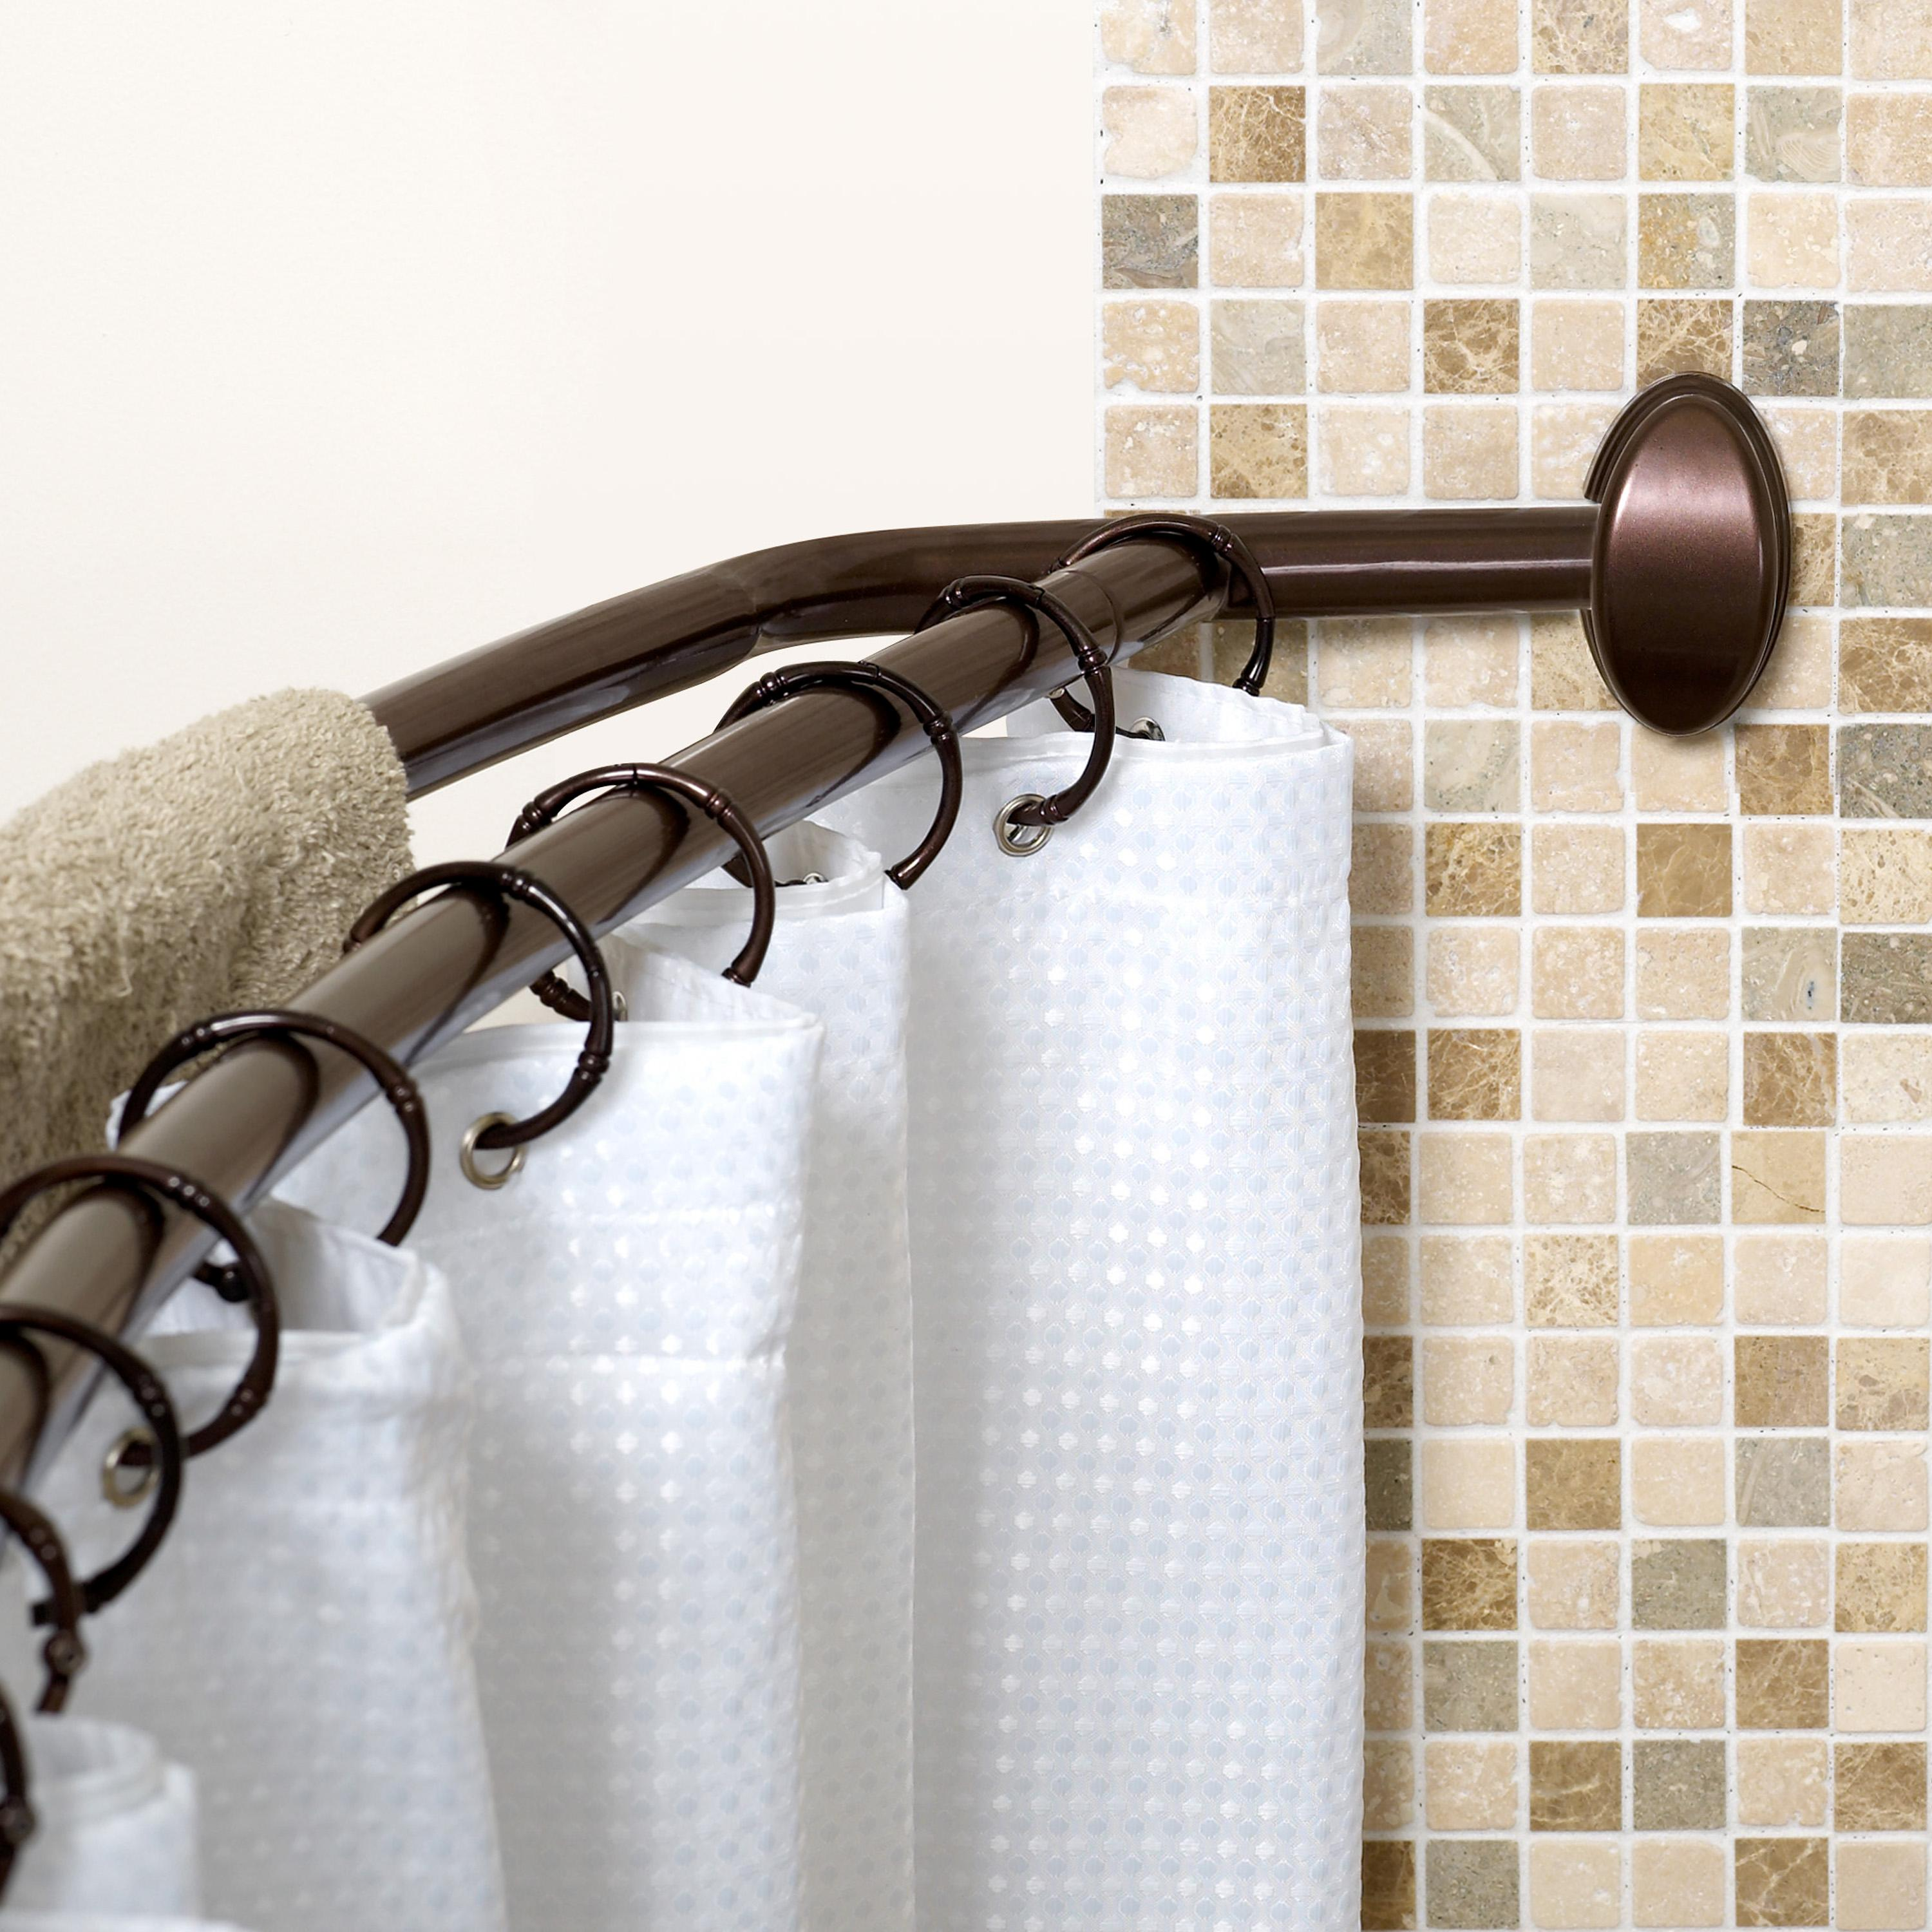 Shower Curtain Tension Rod | Pressure Shower Curtain Rod | Strong Shower Curtain Rod